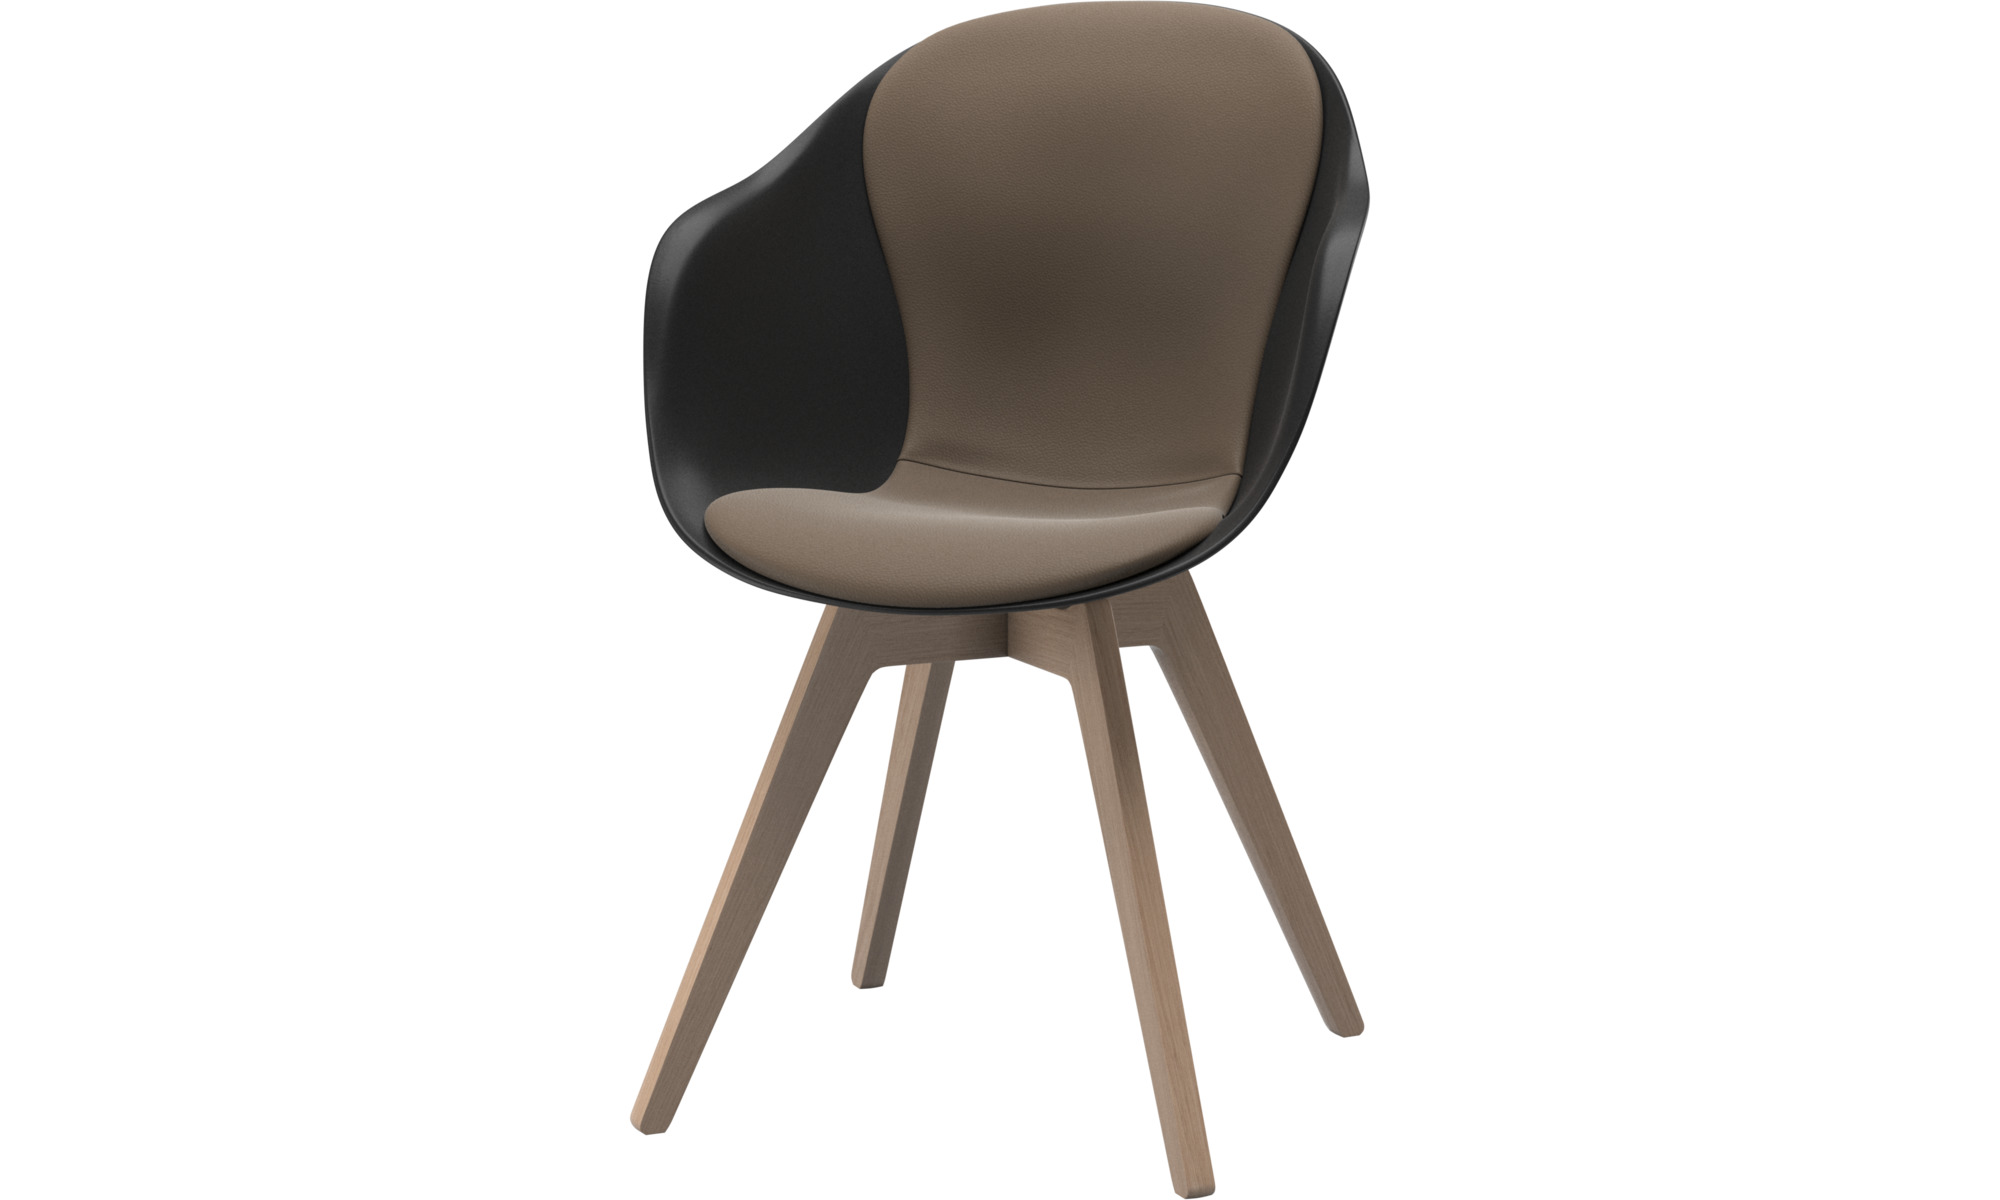 Dining chairs - Adelaide chair - Grey - Leather